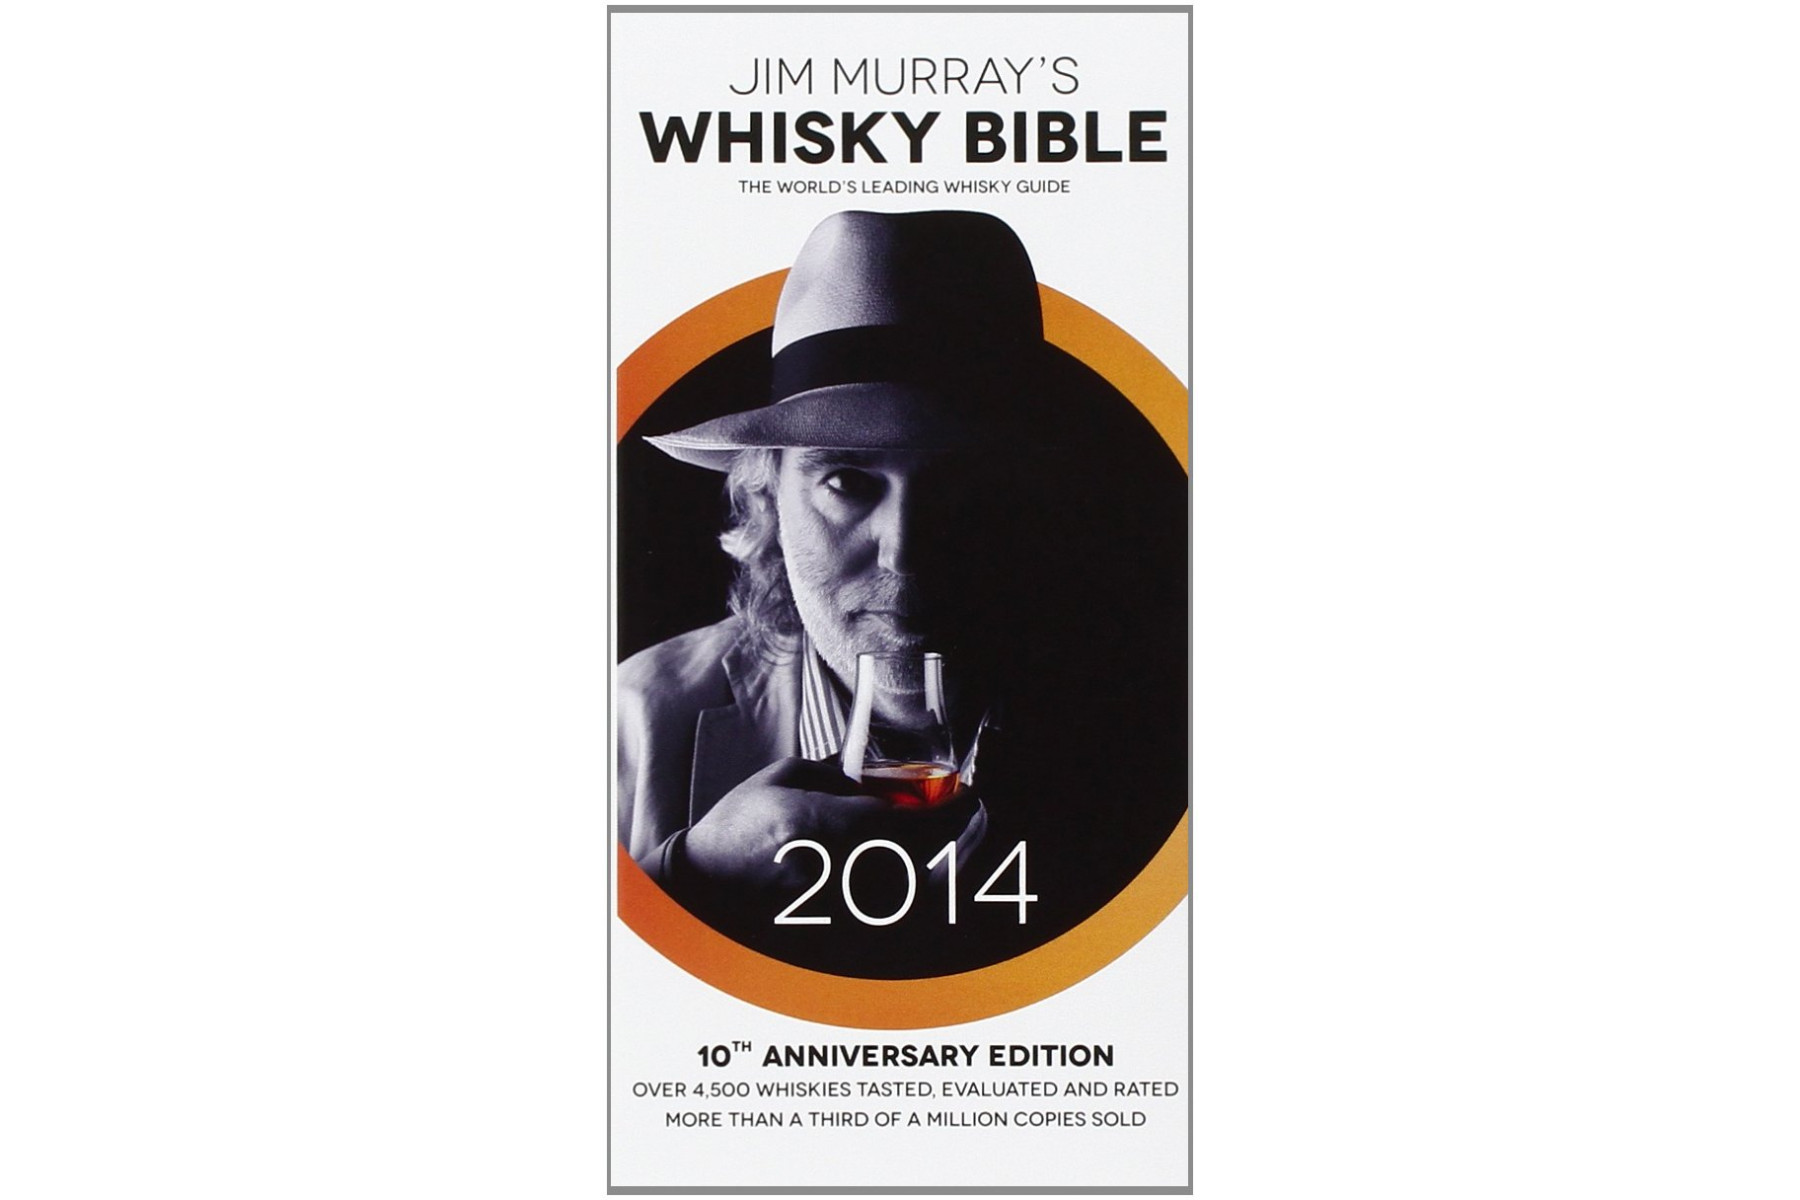 Jim Murray's Whisky Bible 2014